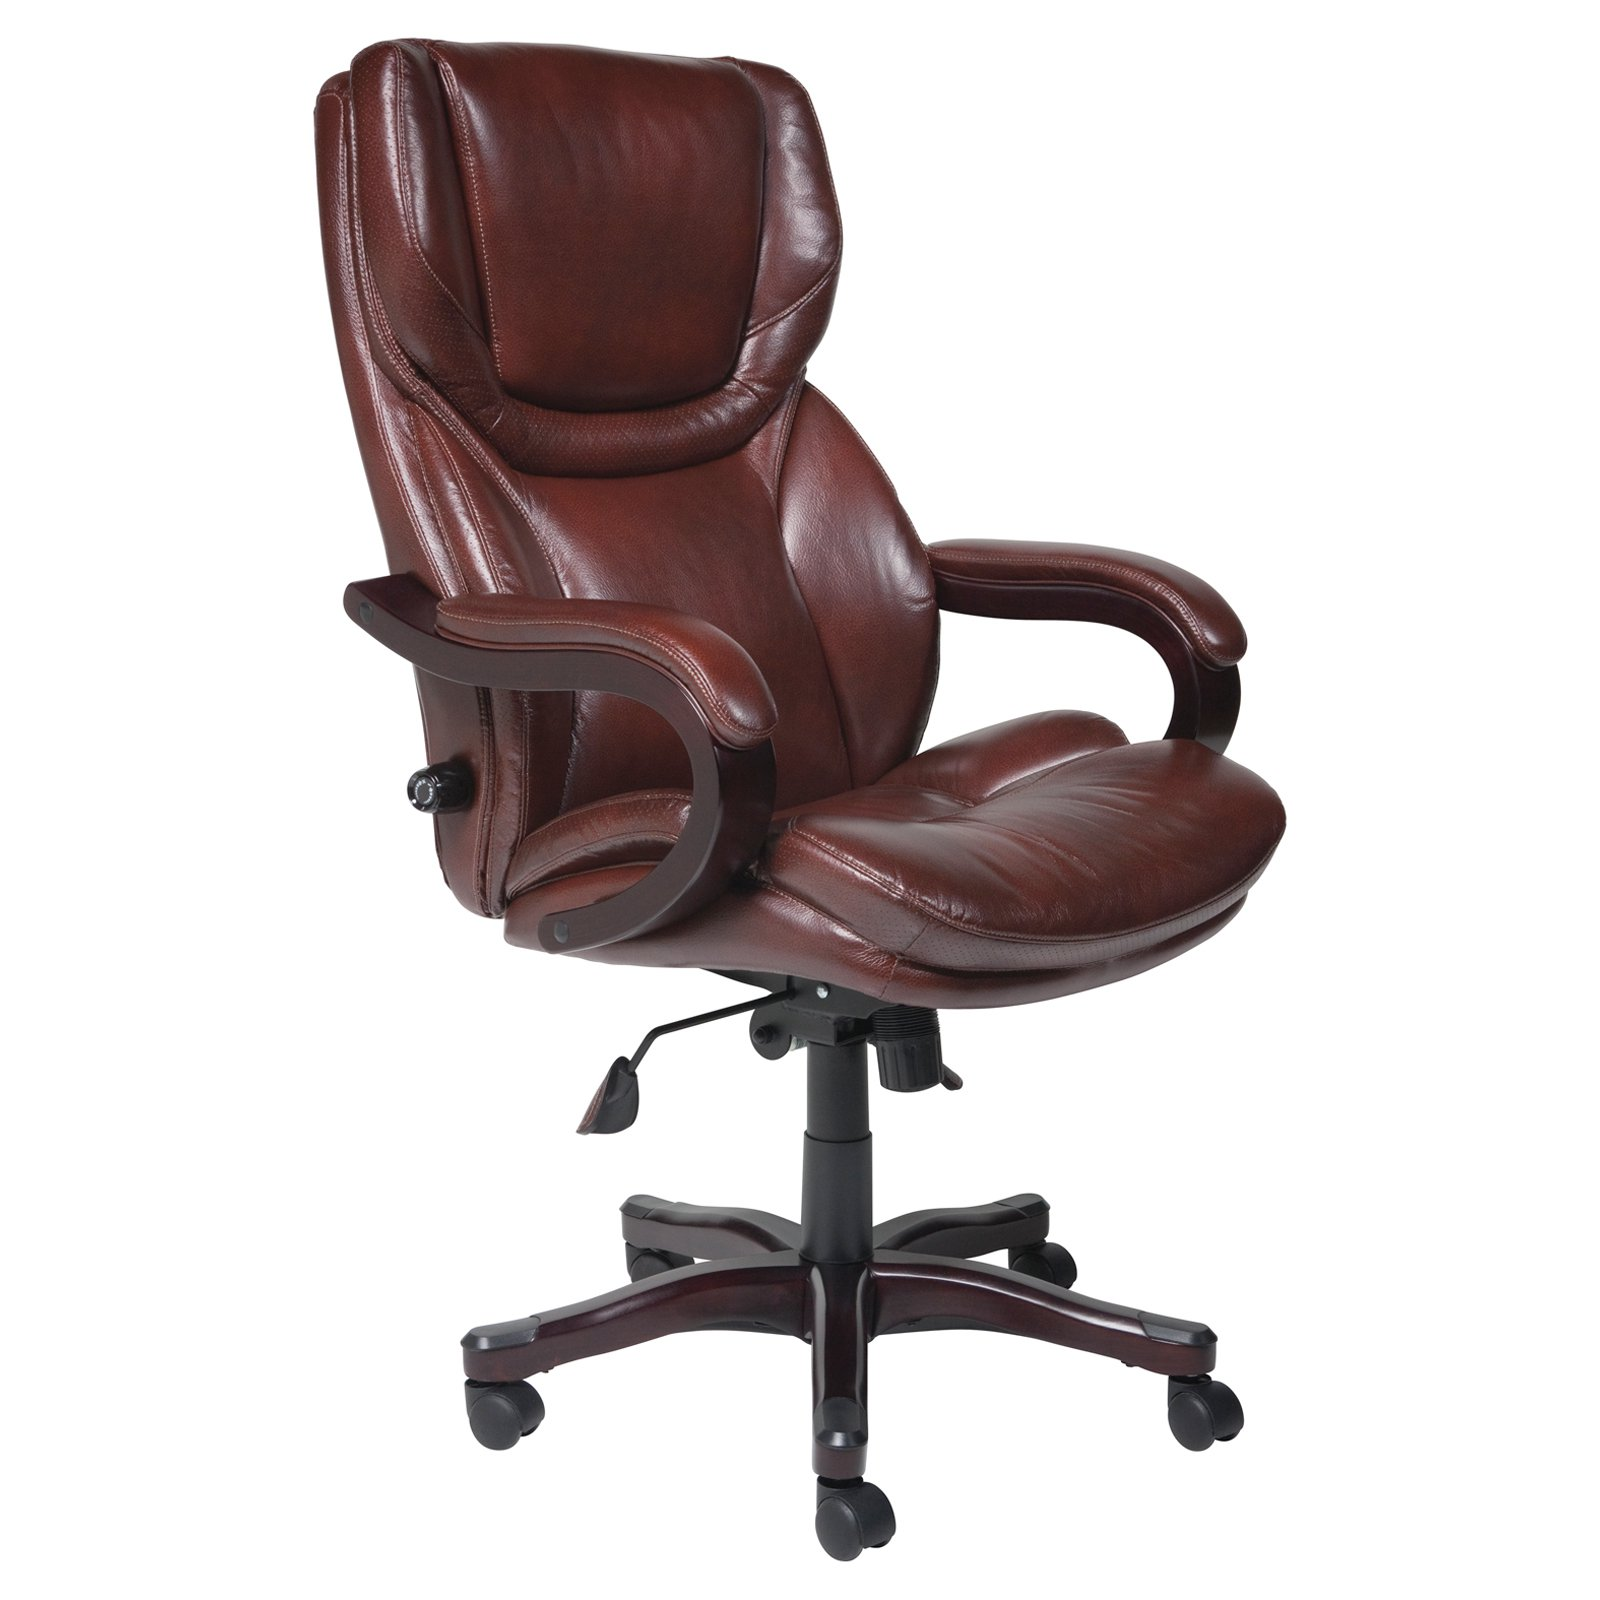 Essentials by OFM ESS-6030 High-Back Bonded Leather Executive Chair with  Fixed Arms, Black - Traveller Location